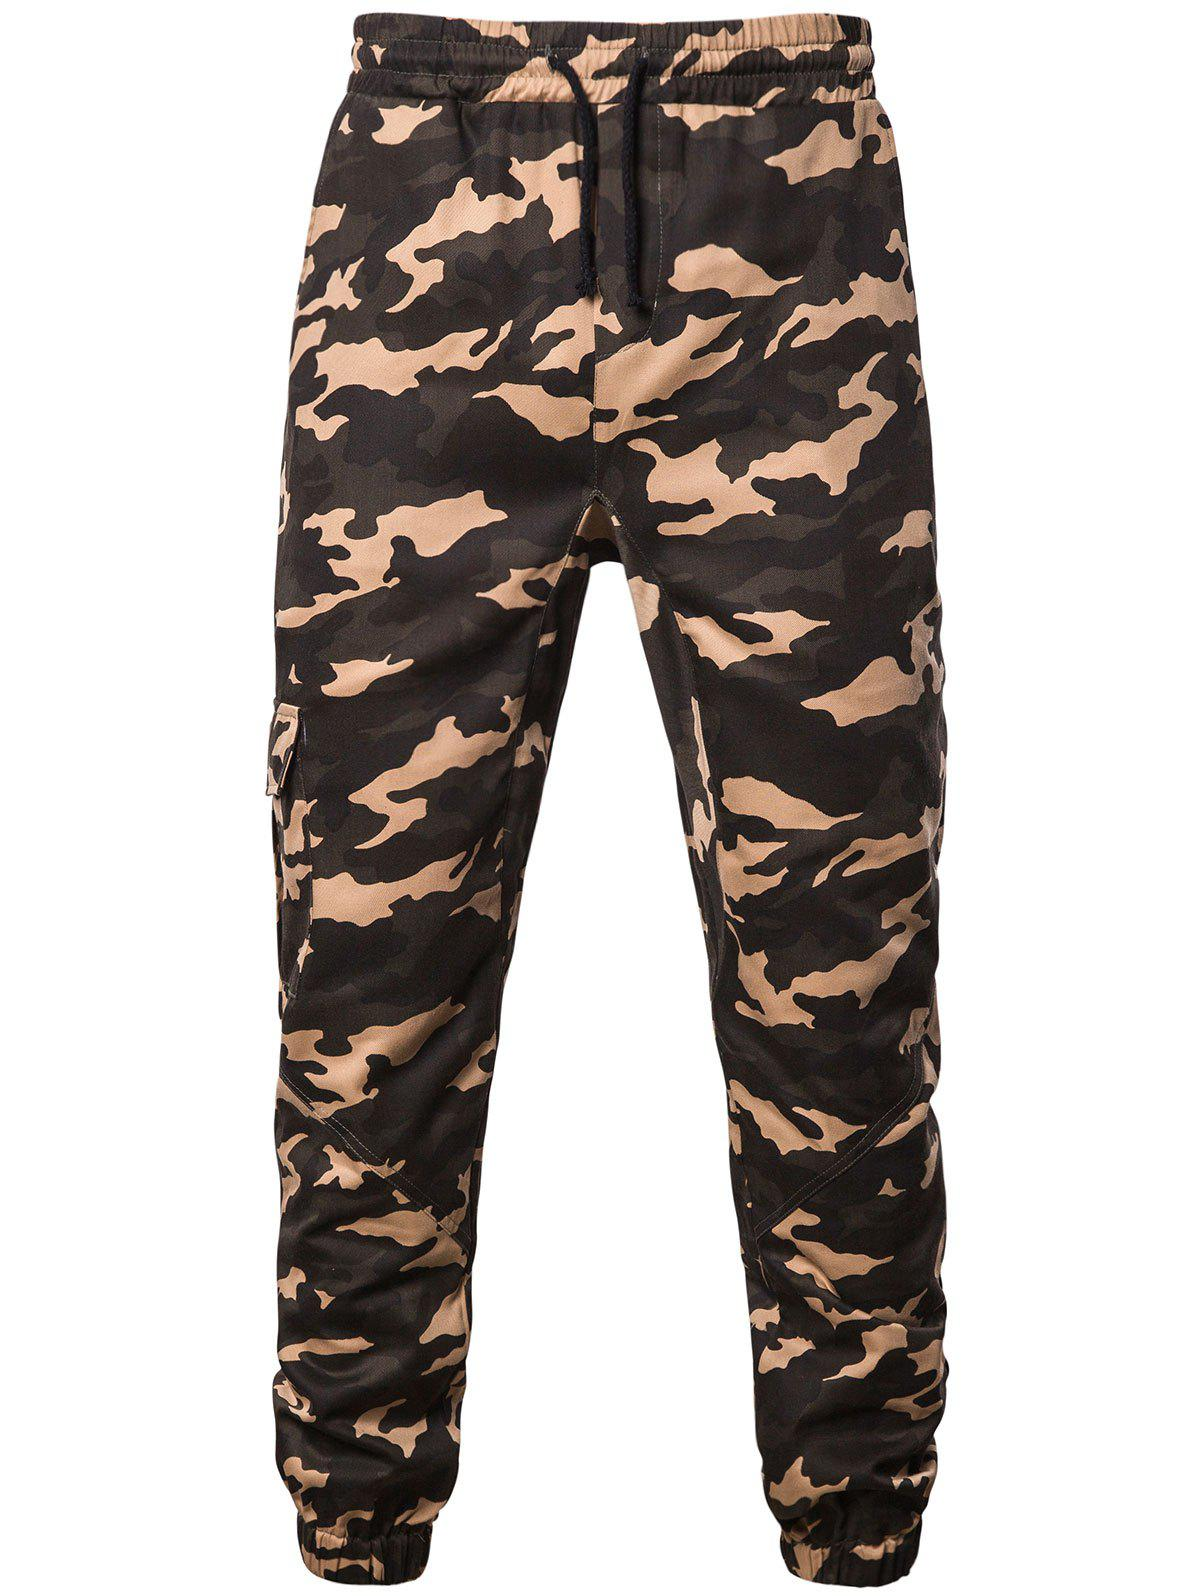 Camouflage Pattern Jogger Pants, Digital desert camouflage